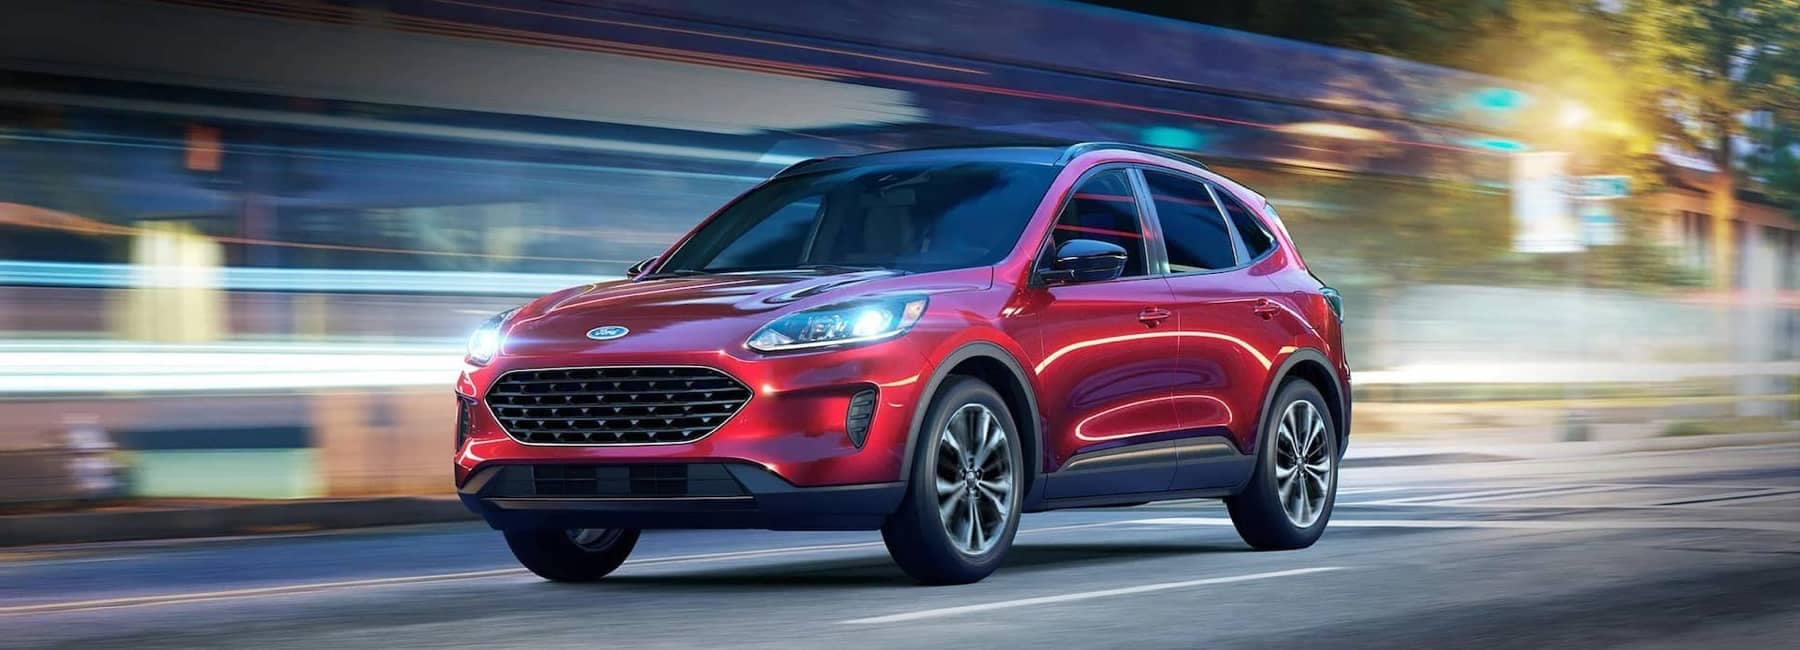 2021 Red Ford Escape driving through a city at night-1800x650